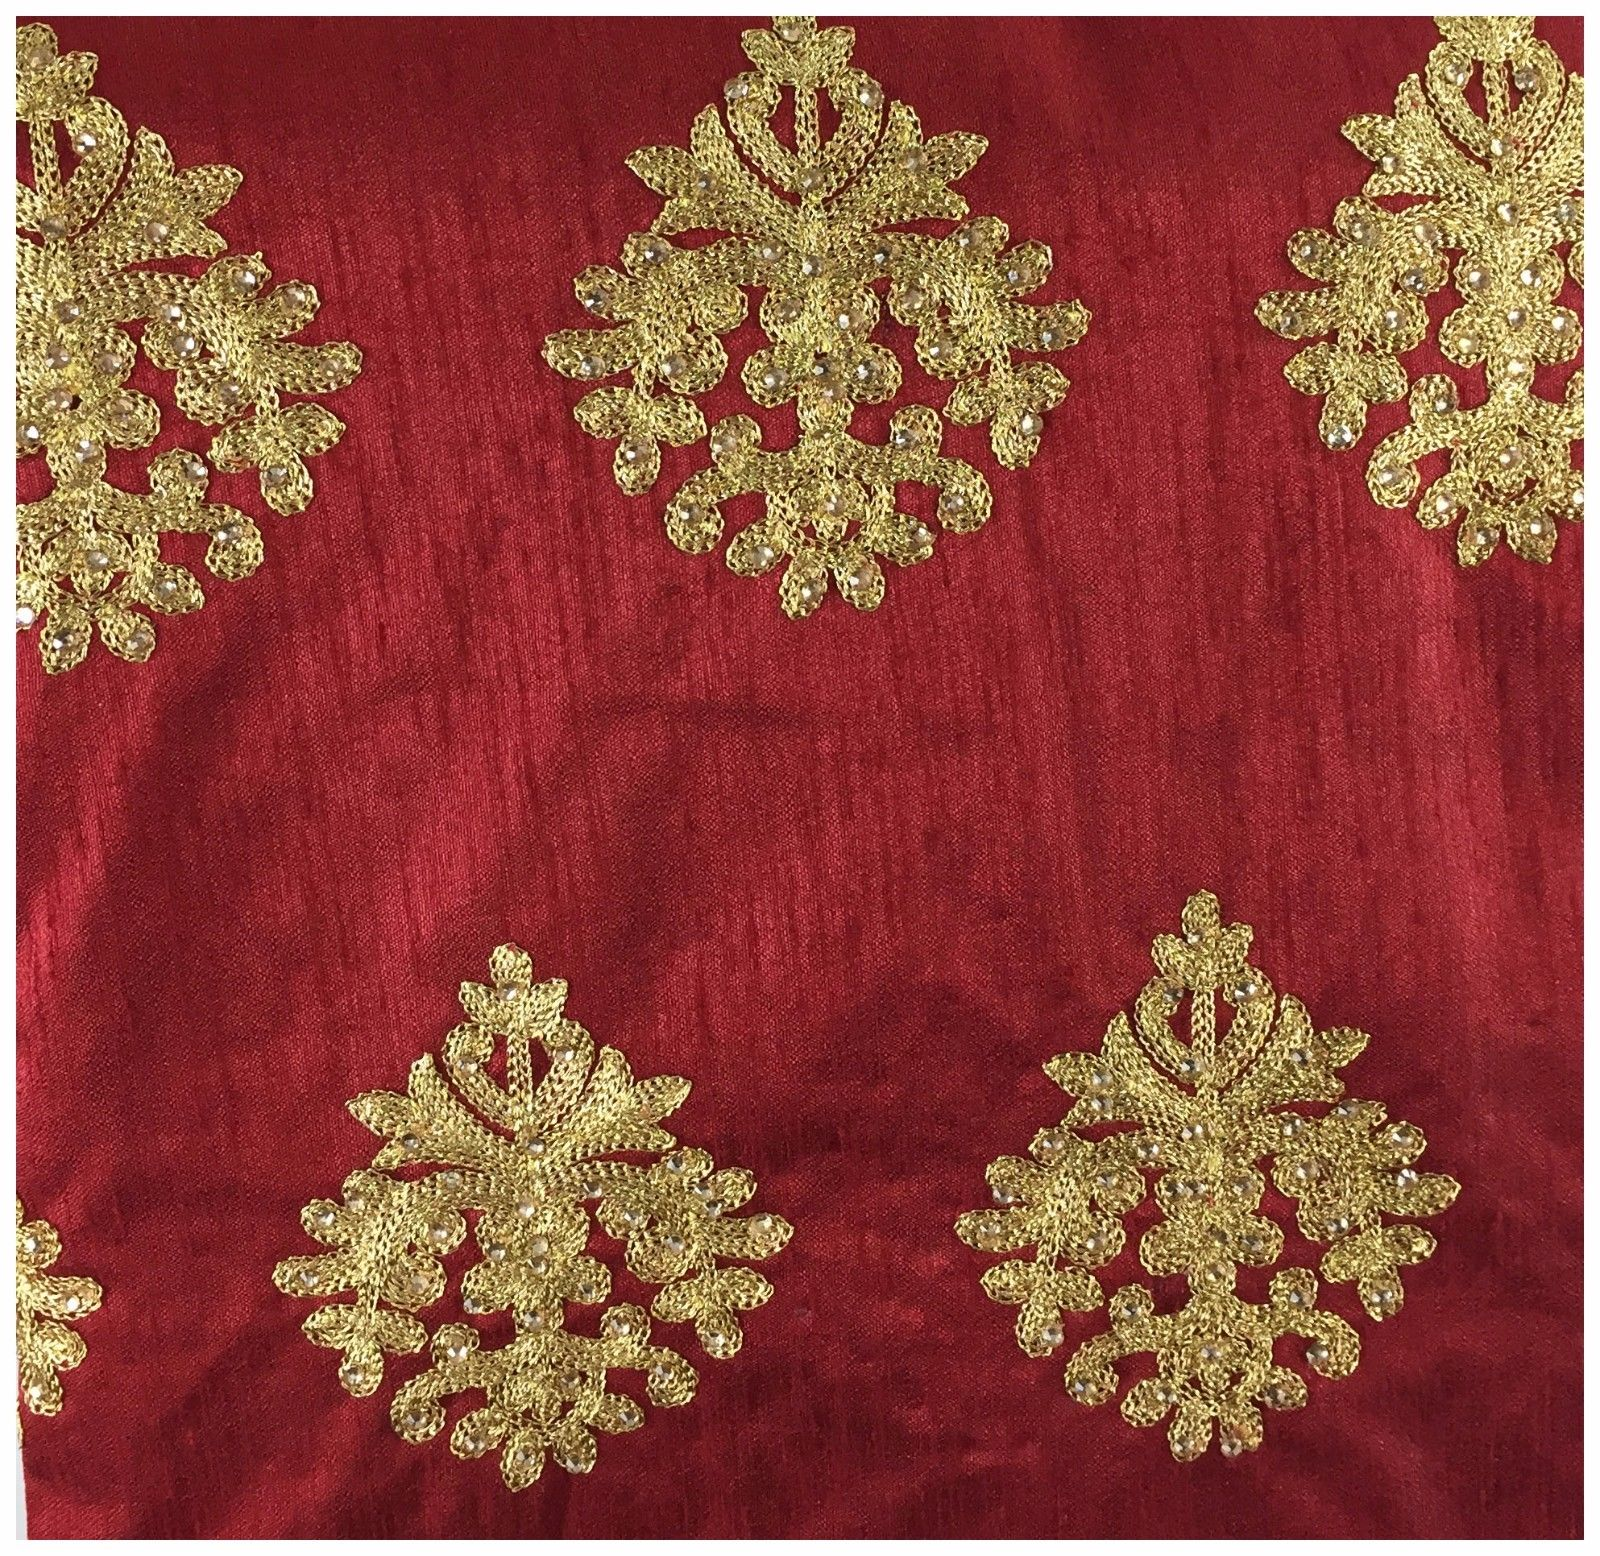 fabric material online running material online shopping Embroidered Dupion Silk Red, Gold 43 inches Wide 8056